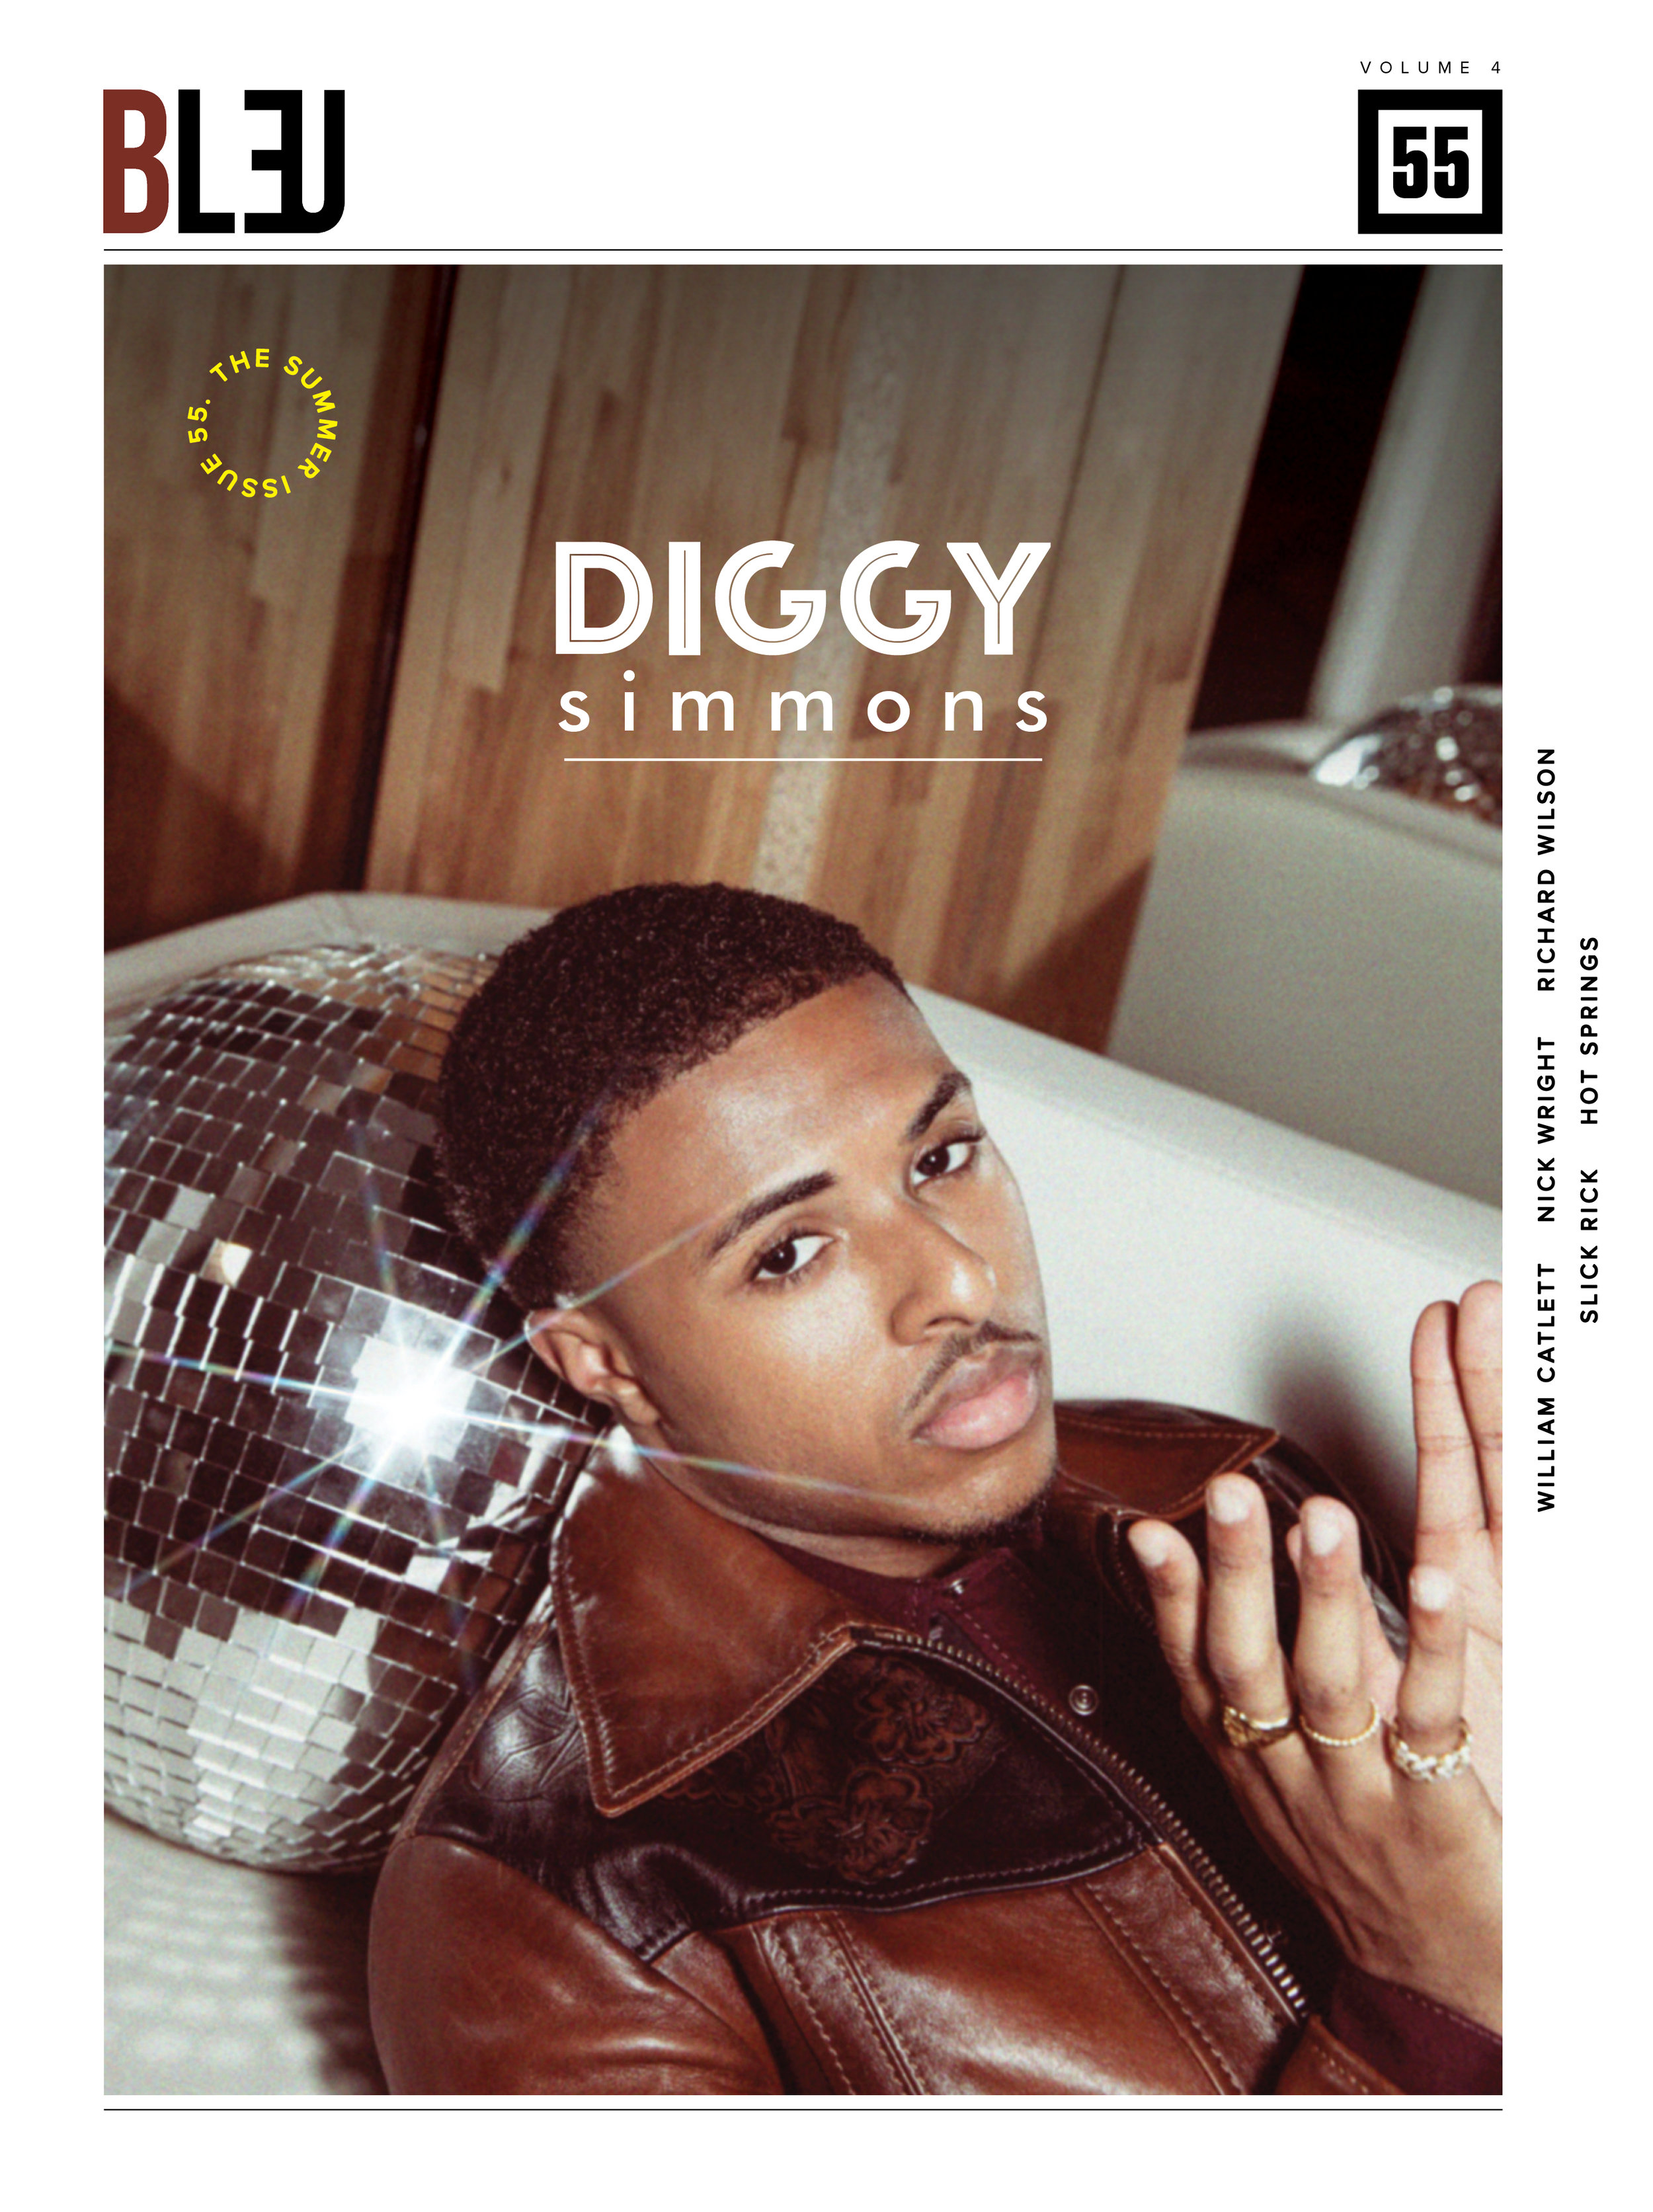 Diggy Simmons Cover 55.jpg